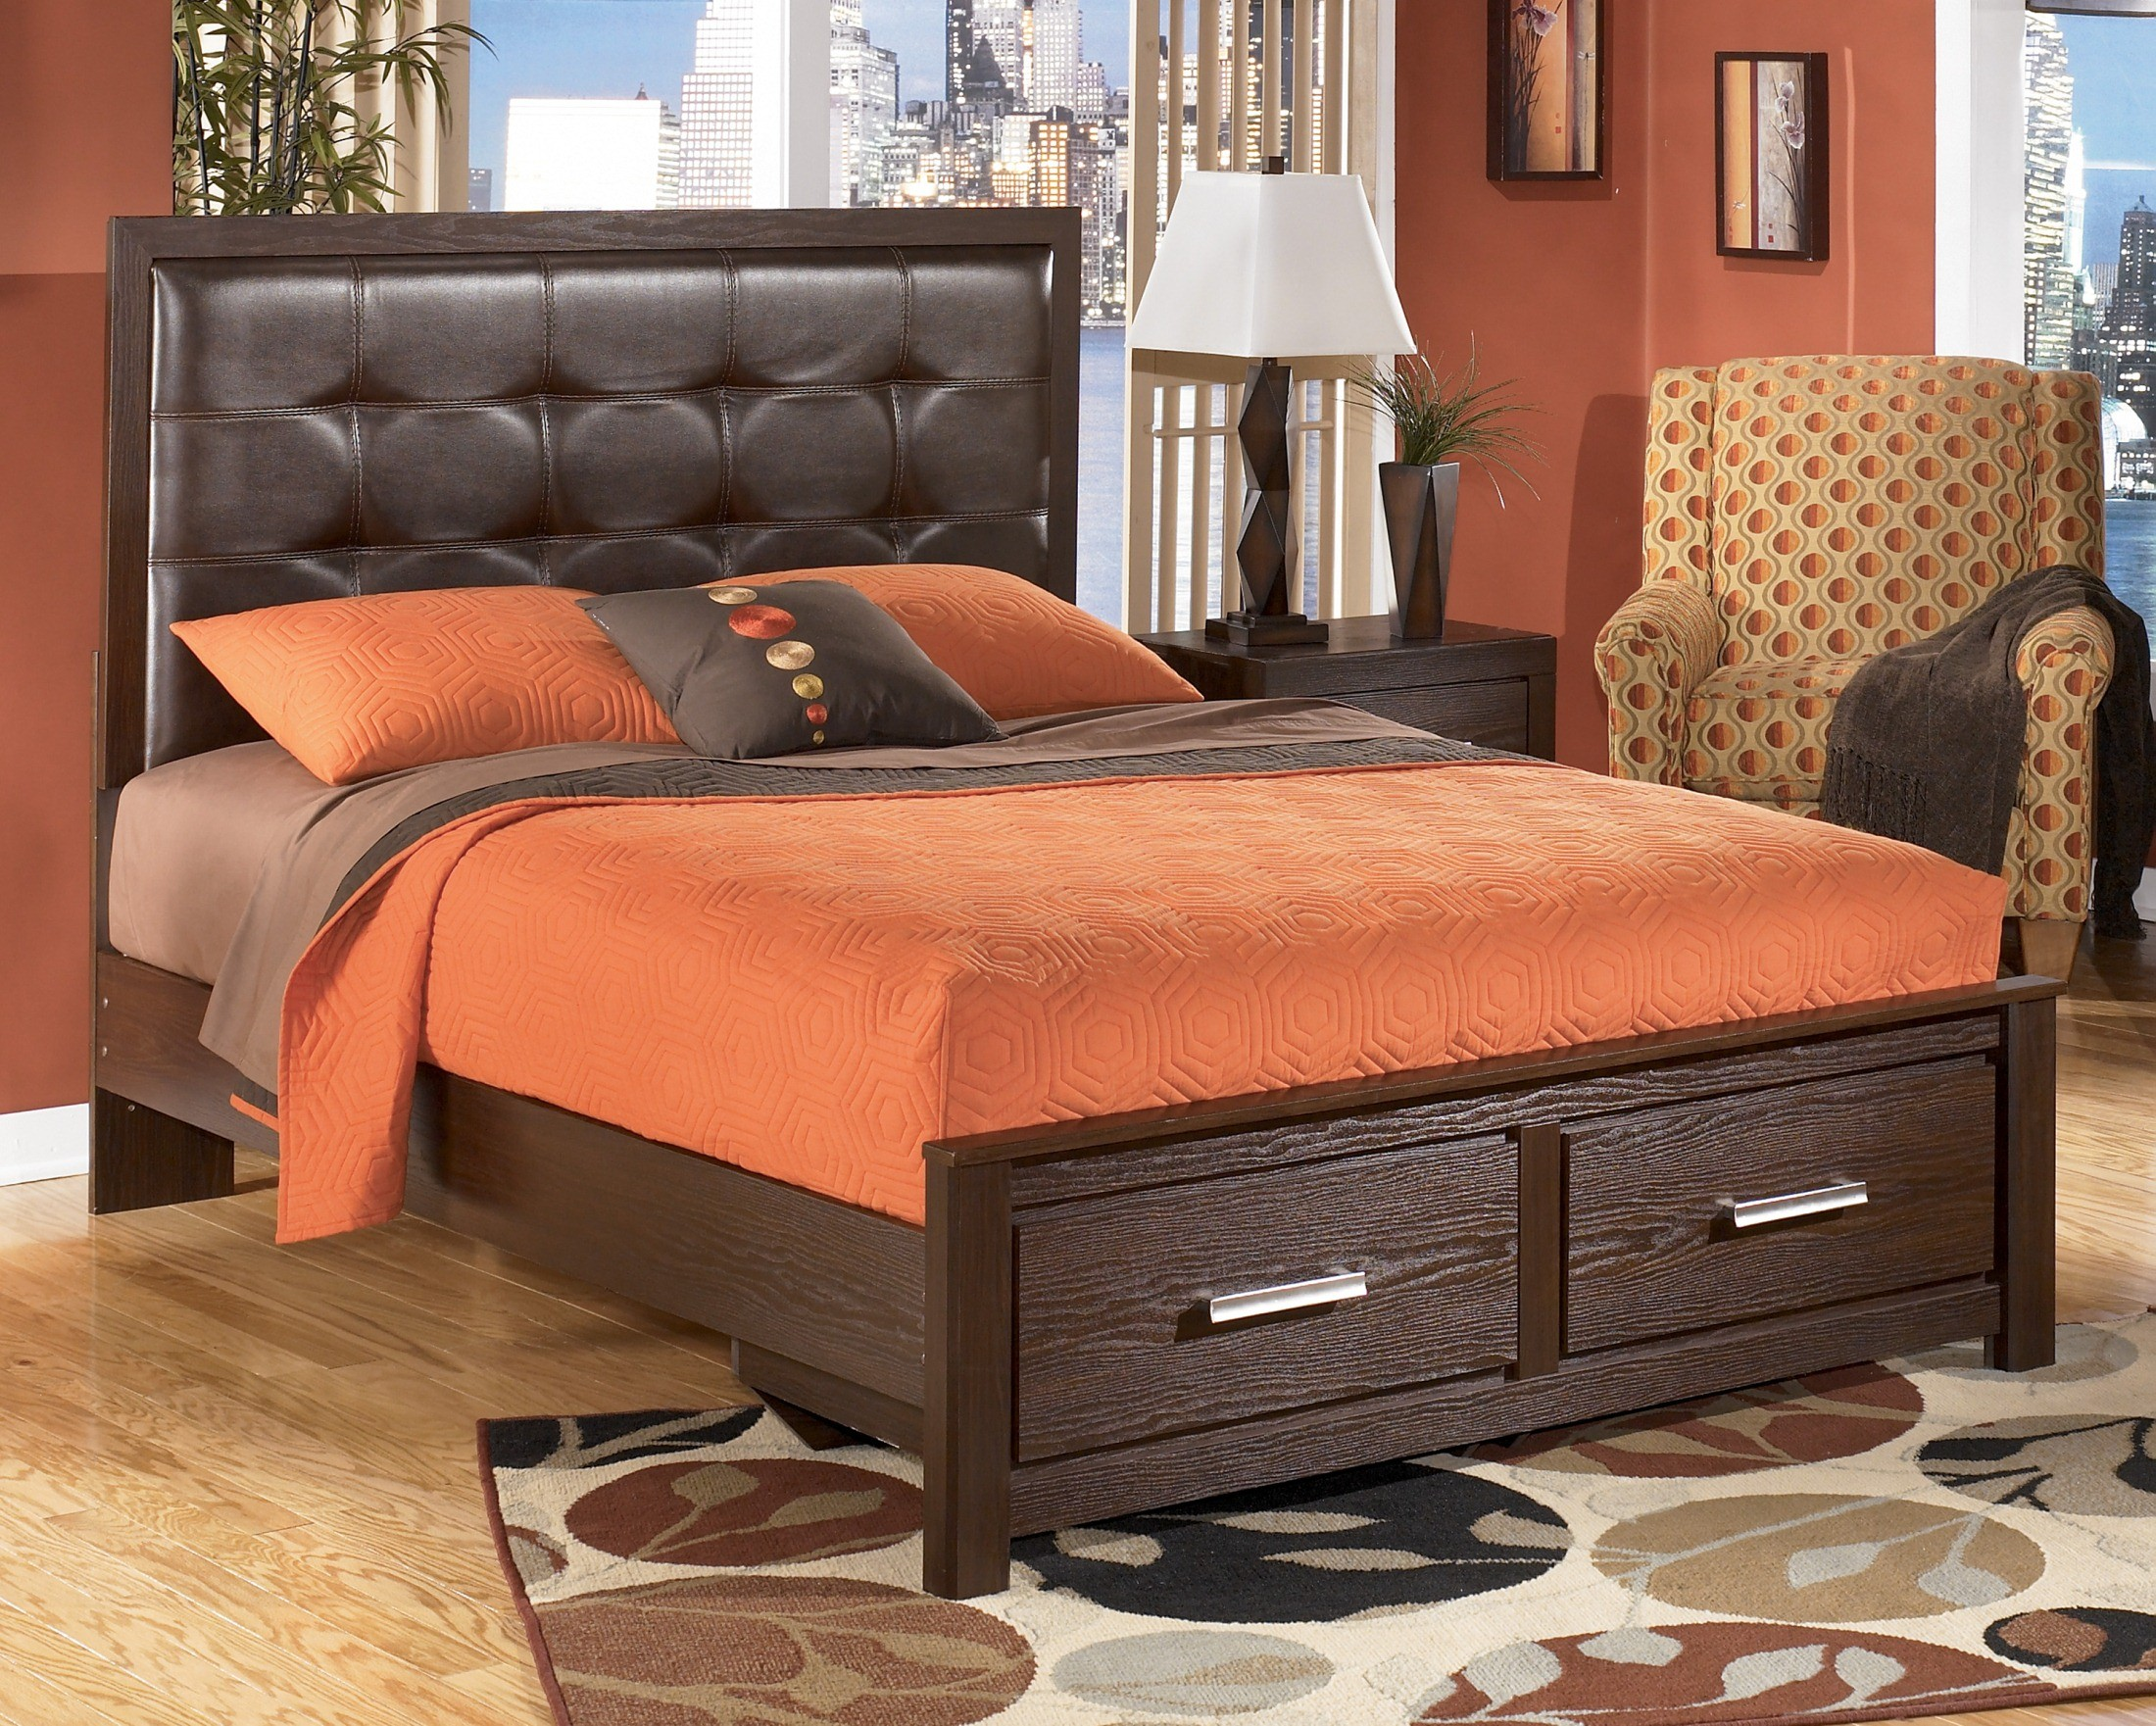 Aleydis Queen Upholstered Platform Storage Bed From Ashley Coleman Furniture